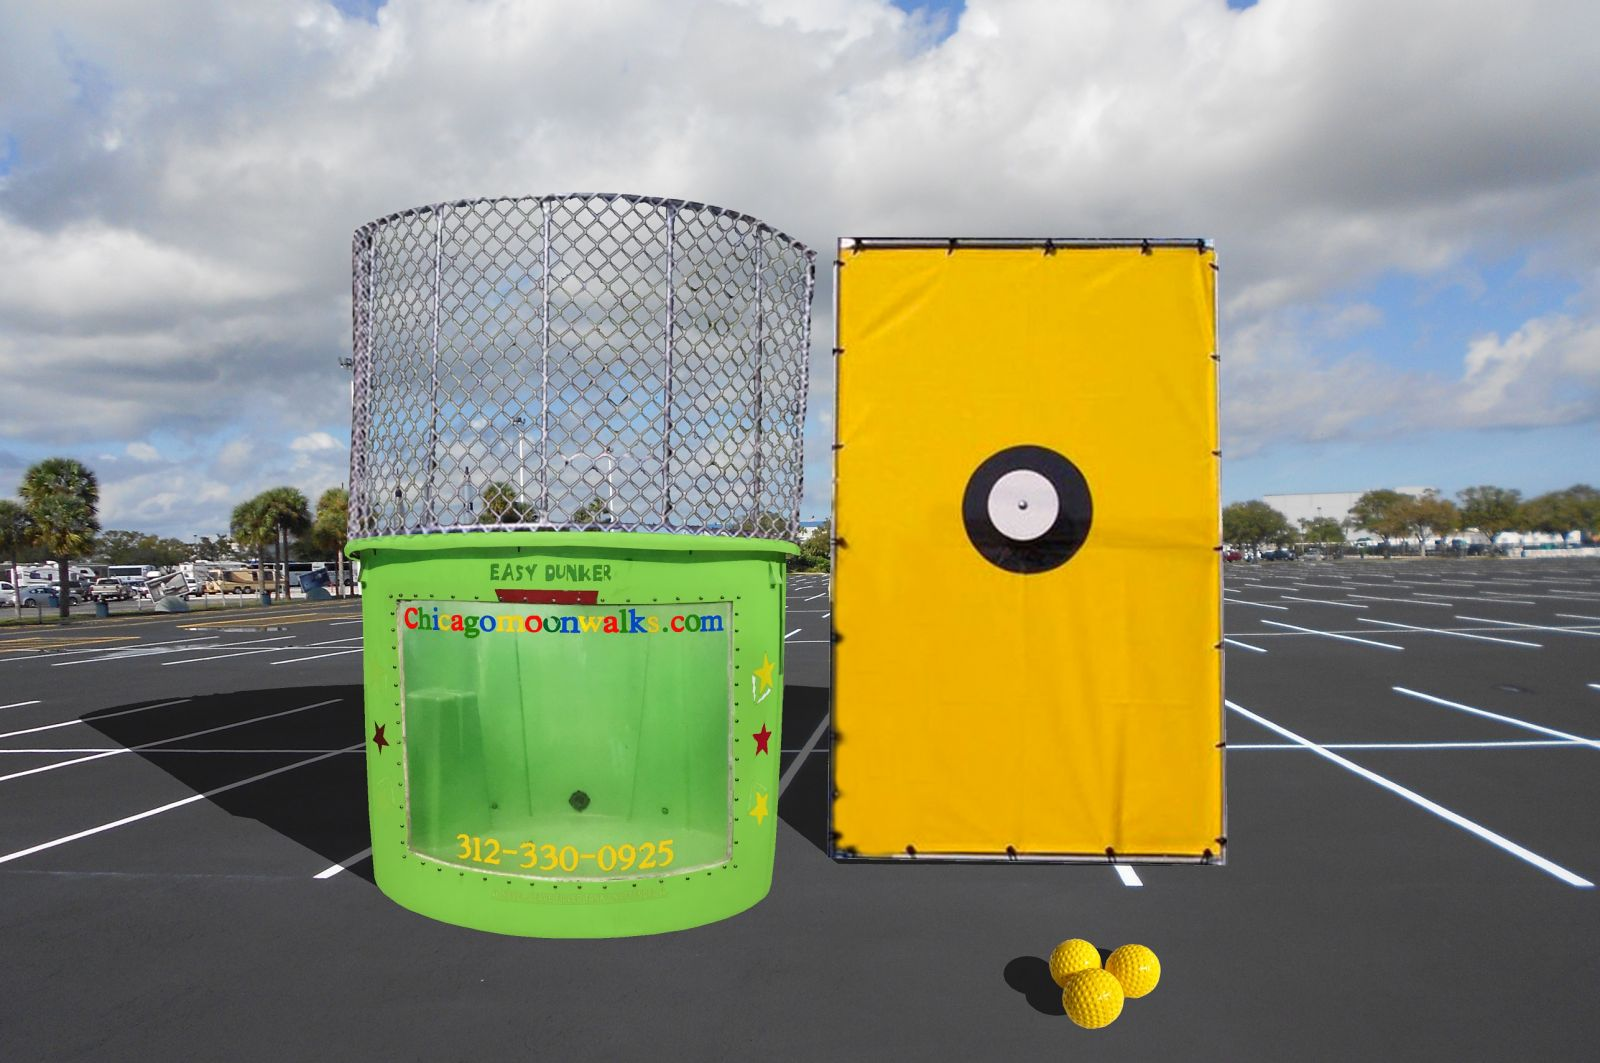 Chicago Dunk Tank Rental, Dunk Tanks for Rent in Chicago IL